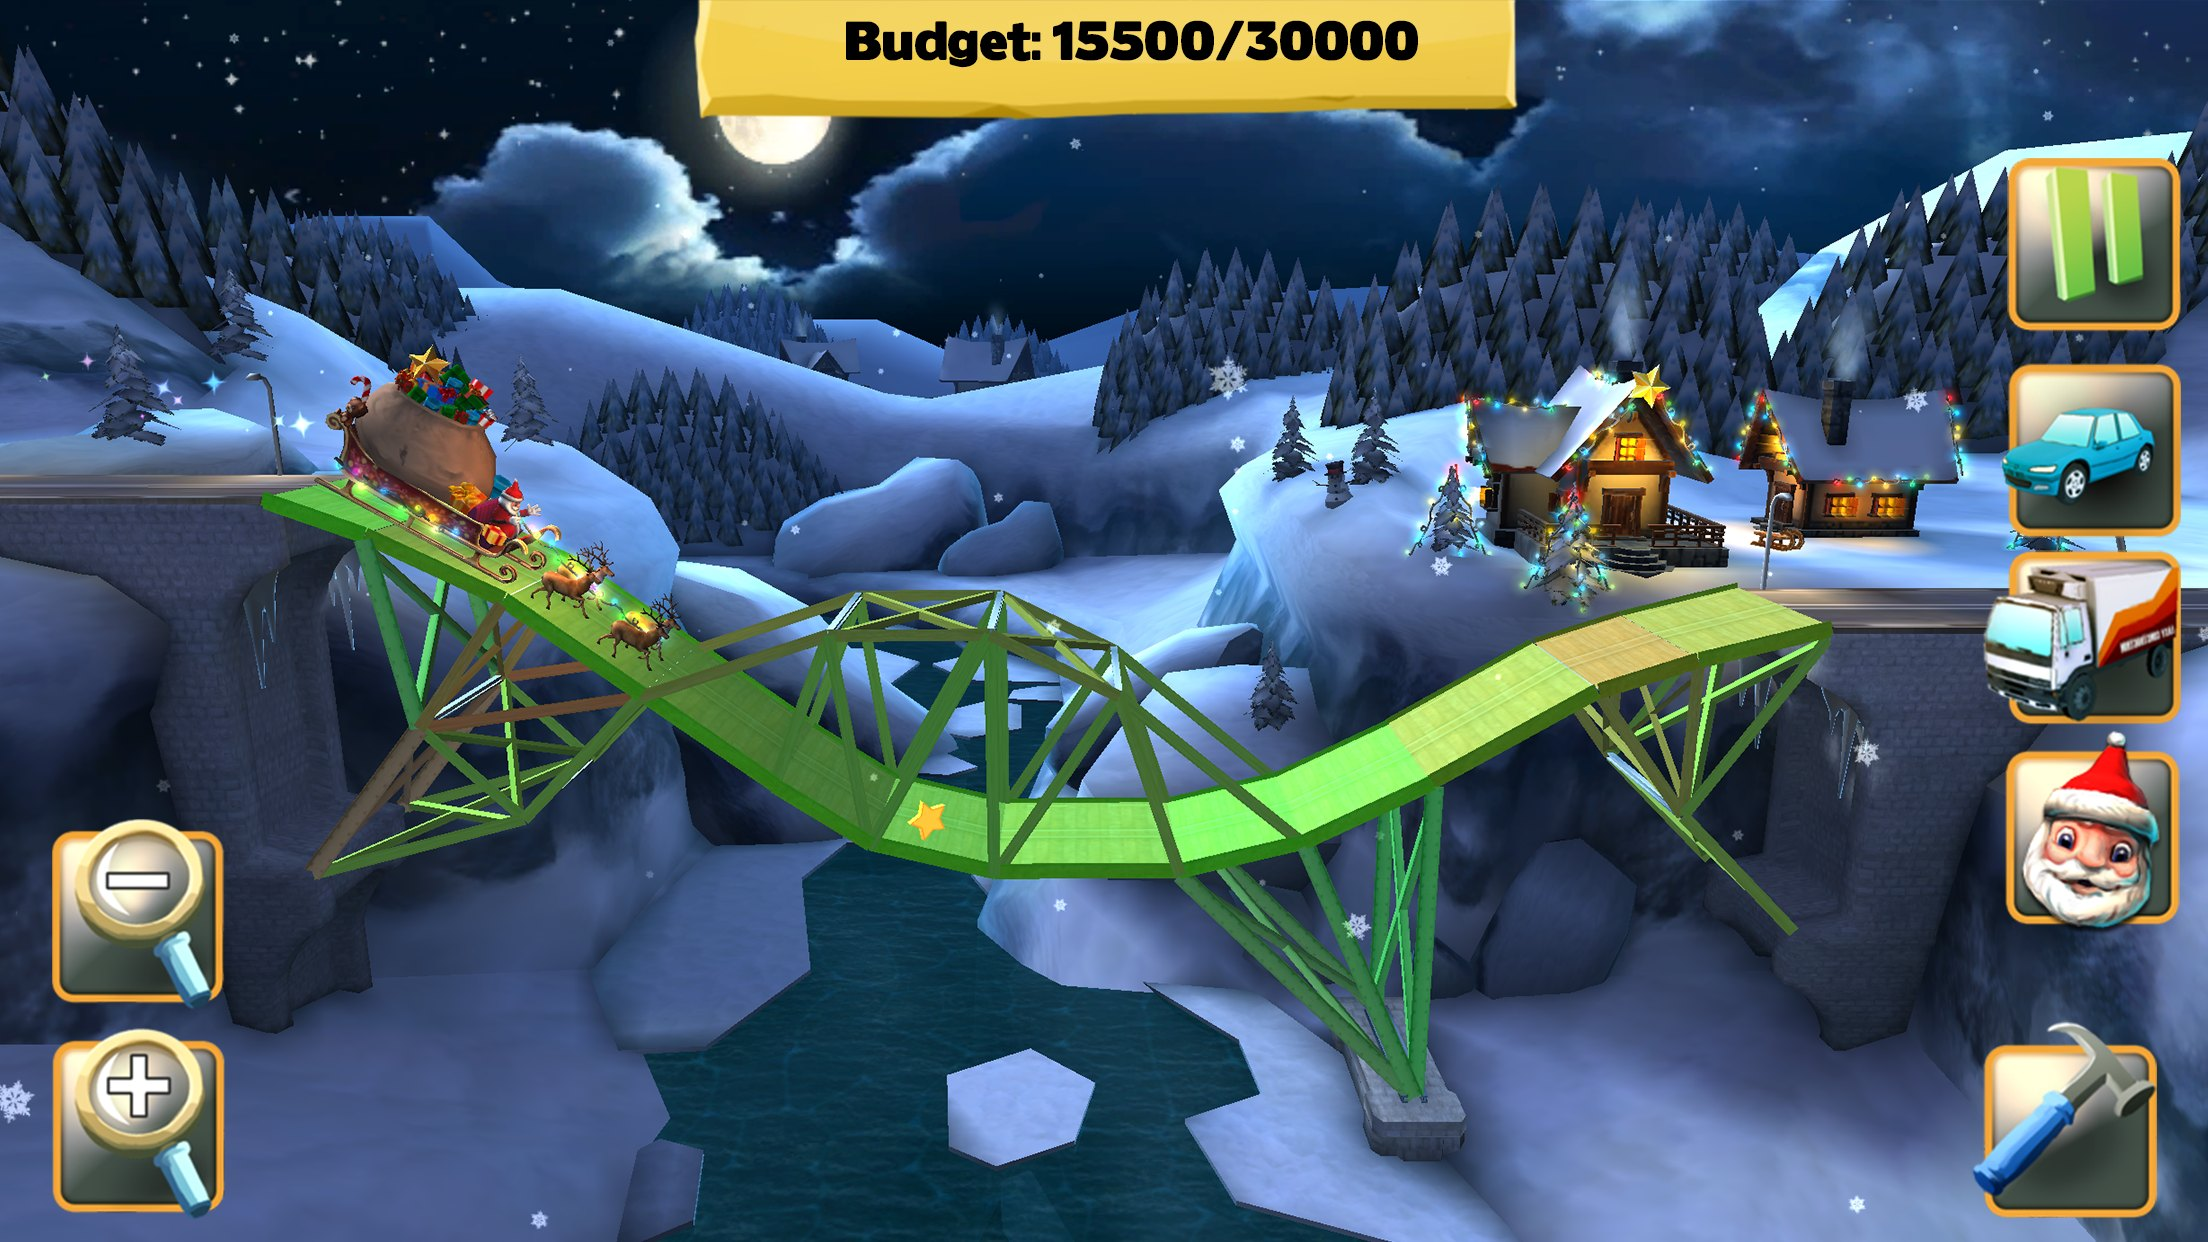 Bridge Constructor gets new wintry levels starring Santa and his sleigh